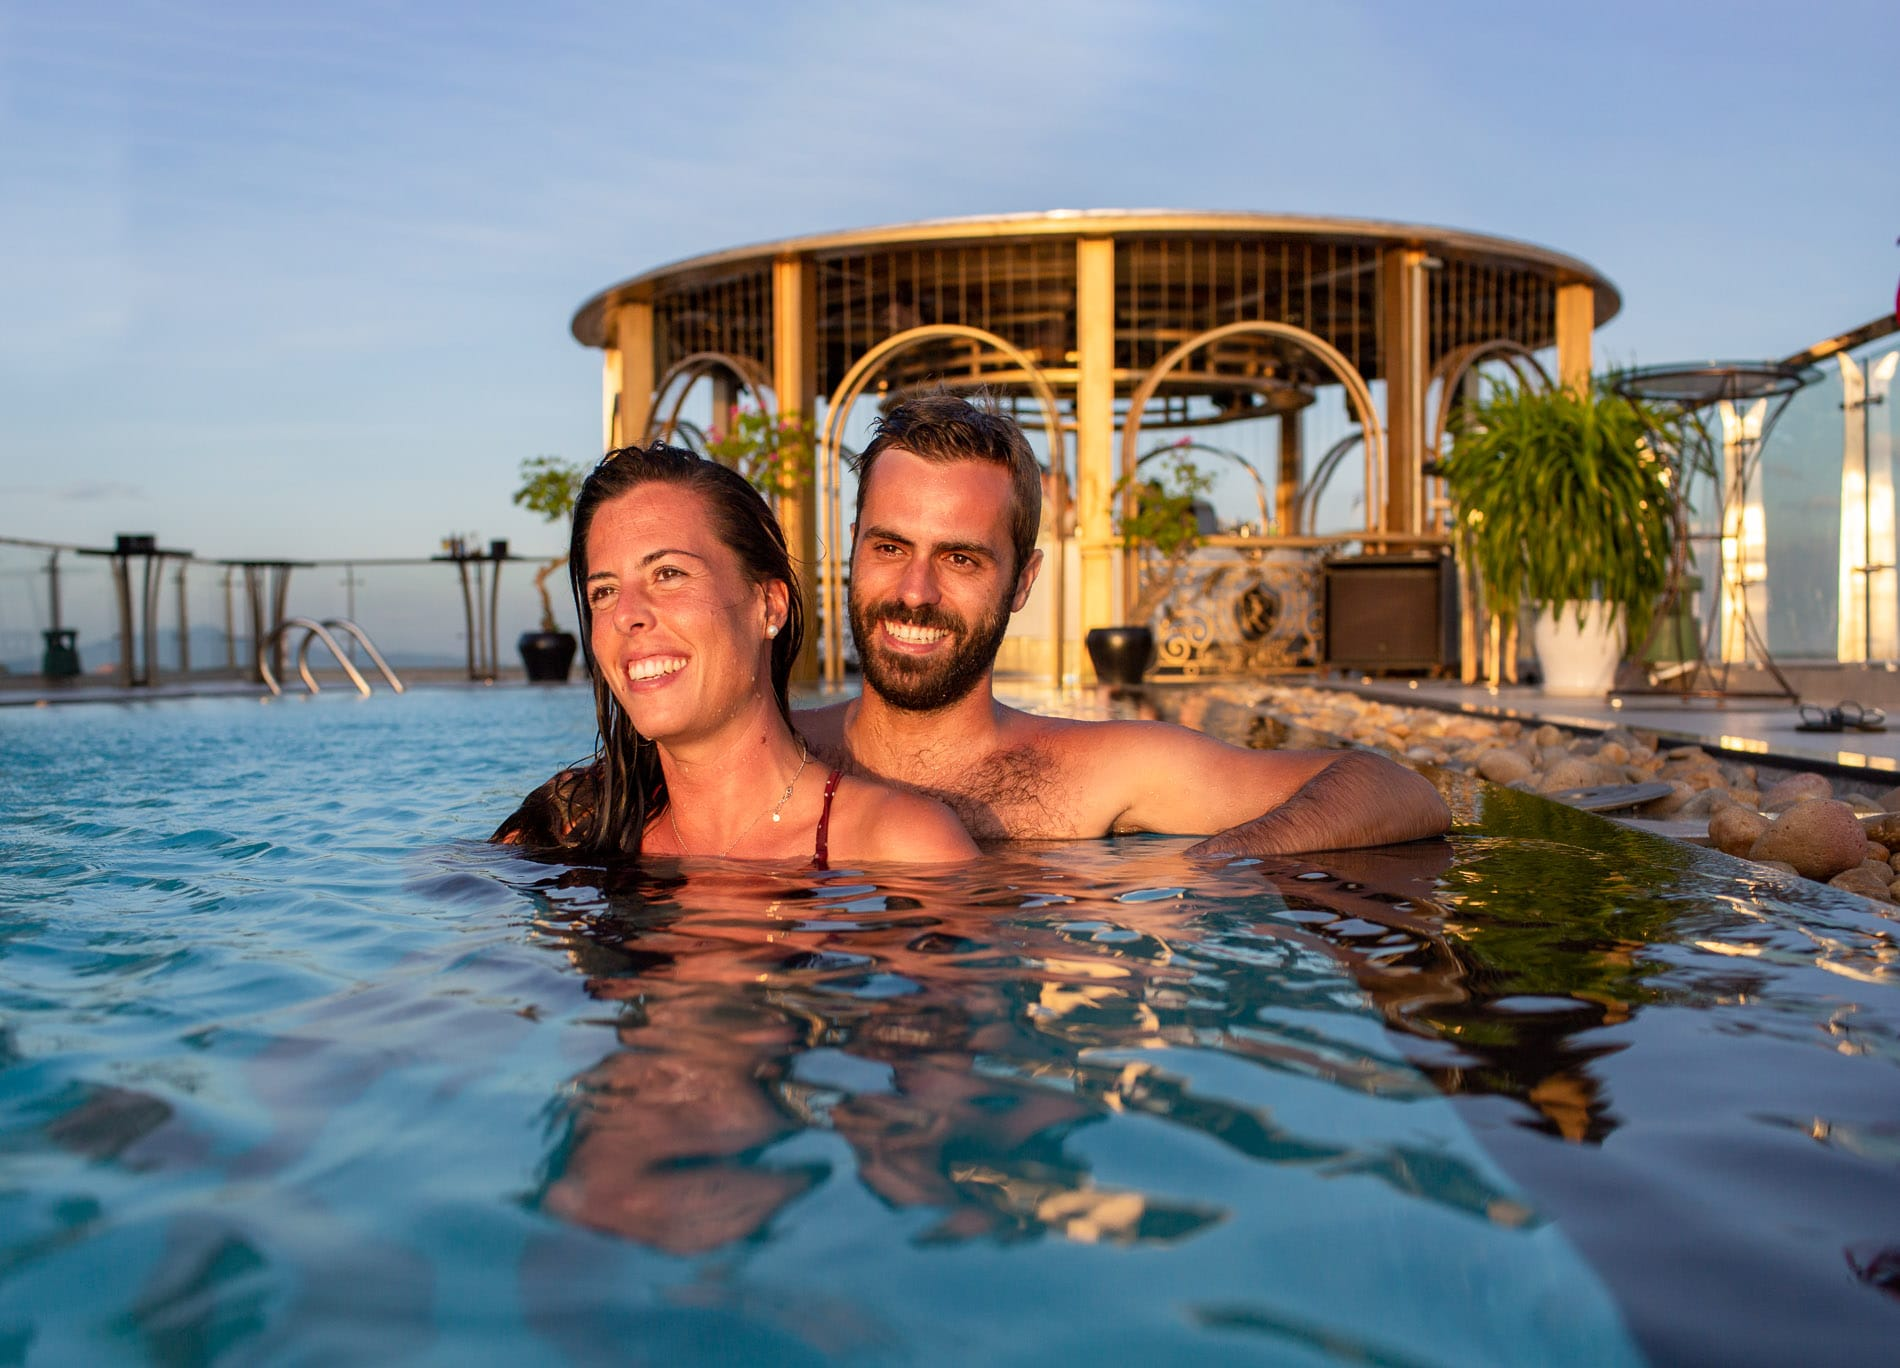 Couple in the pool at sunset